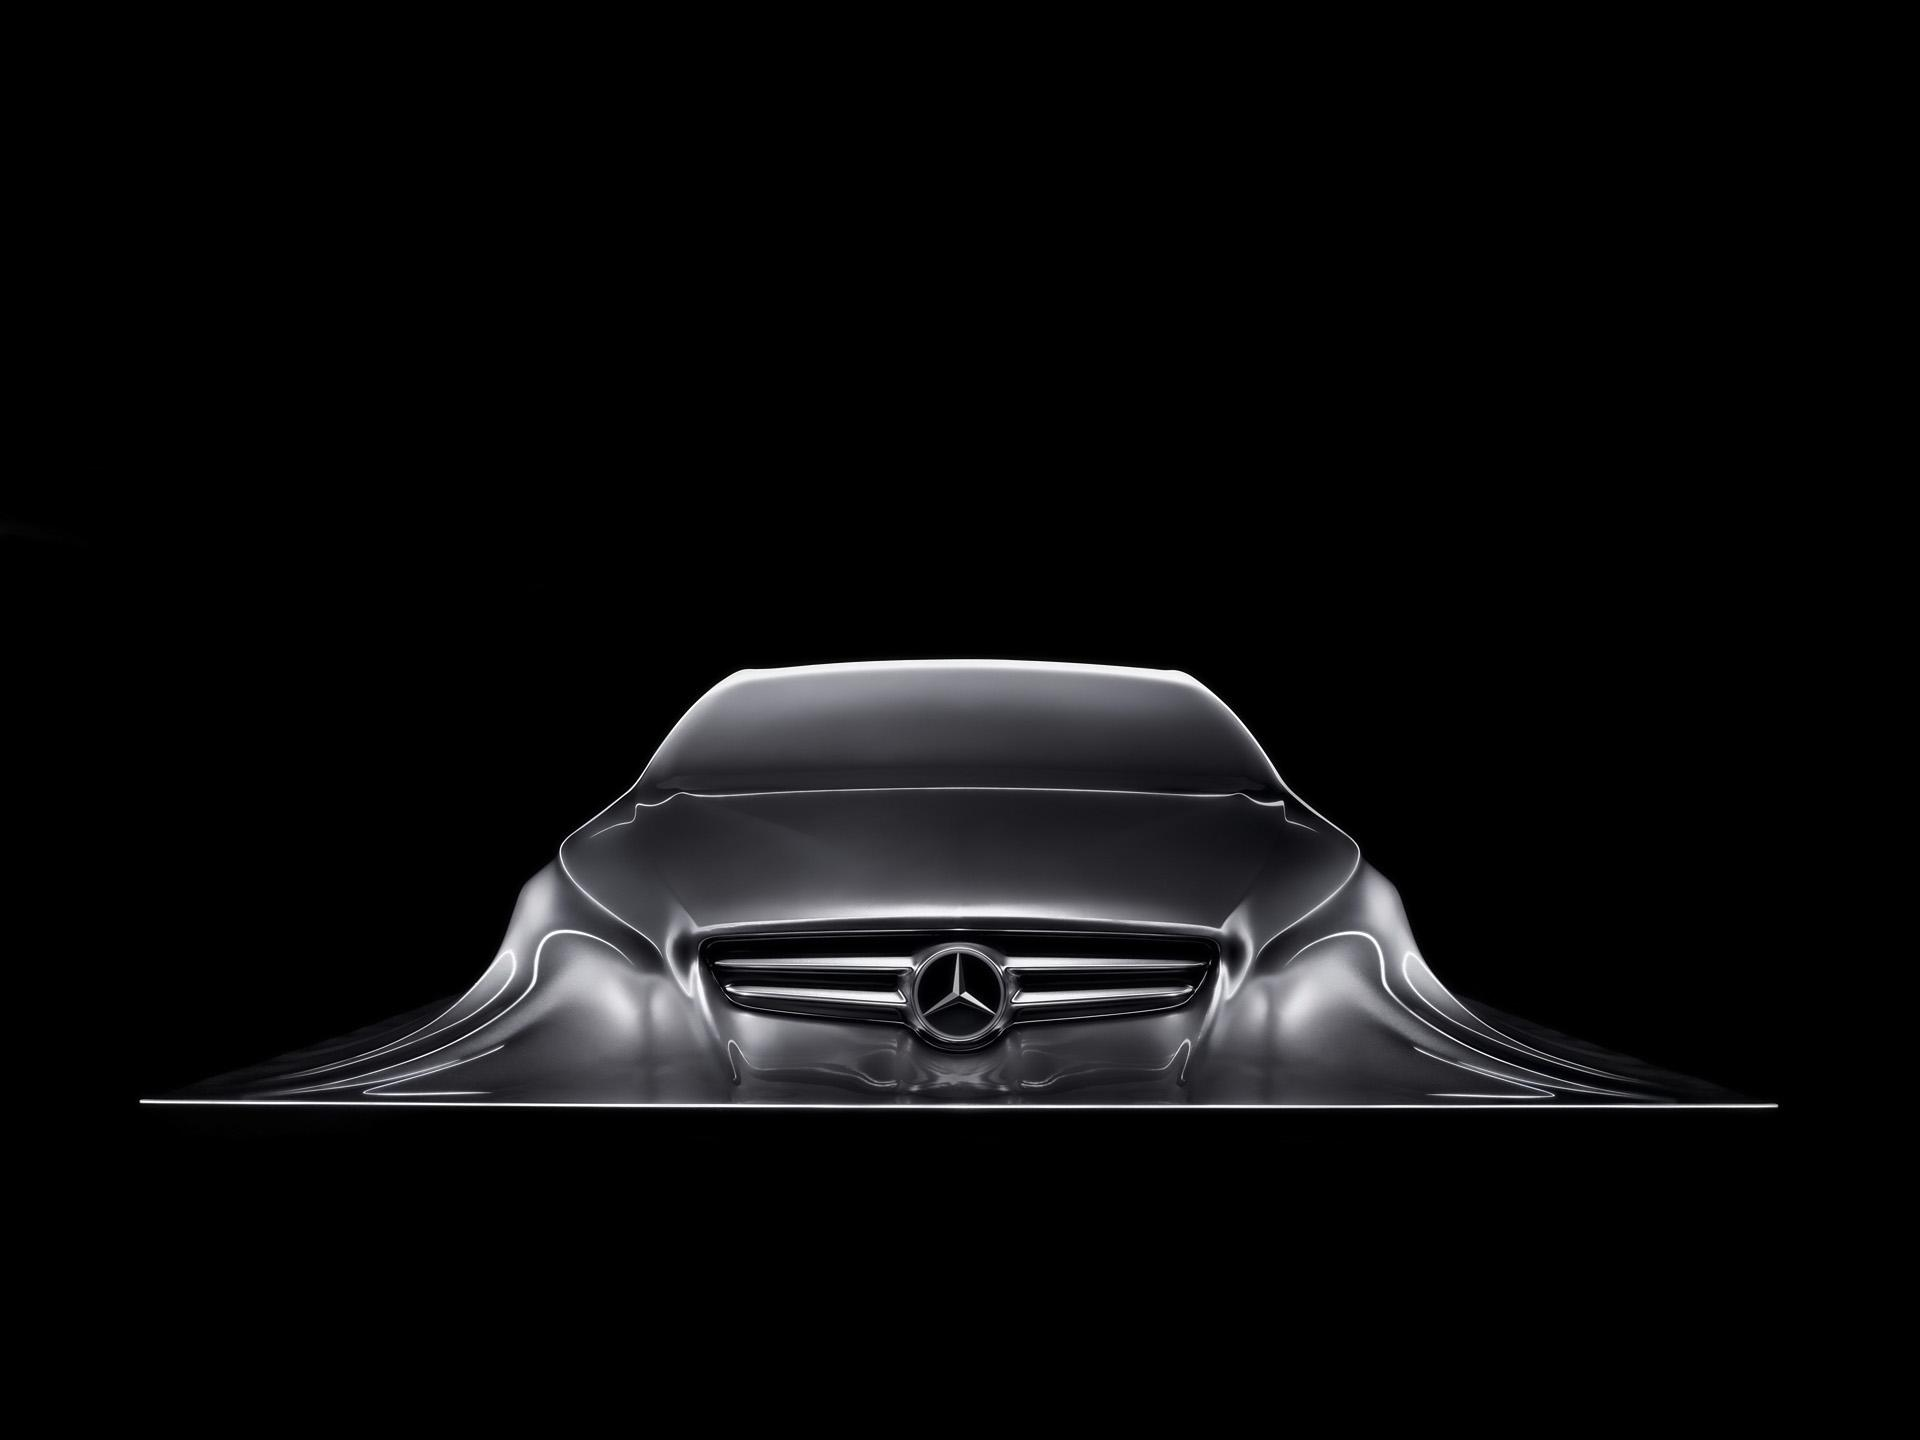 2010 mercedes benz design sculpture image httpsconceptcarz 2010 mercedes benz design sculpture voltagebd Image collections